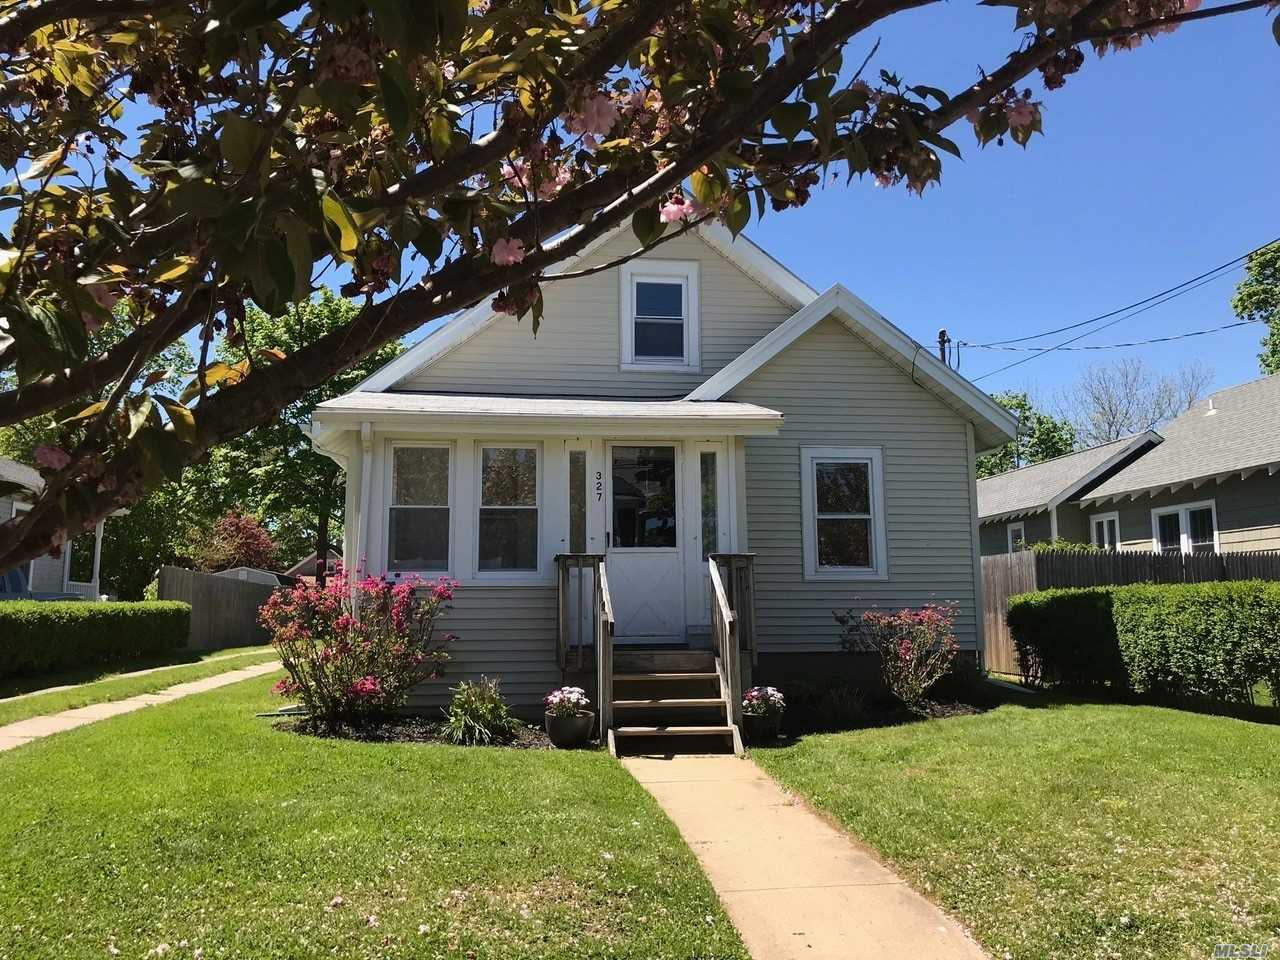 Renovated Vintage 40'S Bungalow. New Kitchen. New Bath. 2 Enclosed Porches. Nice Yard. 3 Blocks To Bay Beach. 4 Blocks To Nyc Transportation. 6 Blocks To Village Shopping, Restaurants And Marina. Md-Ld $18K; June $6K; July $7K, Aug-Ld $8K.